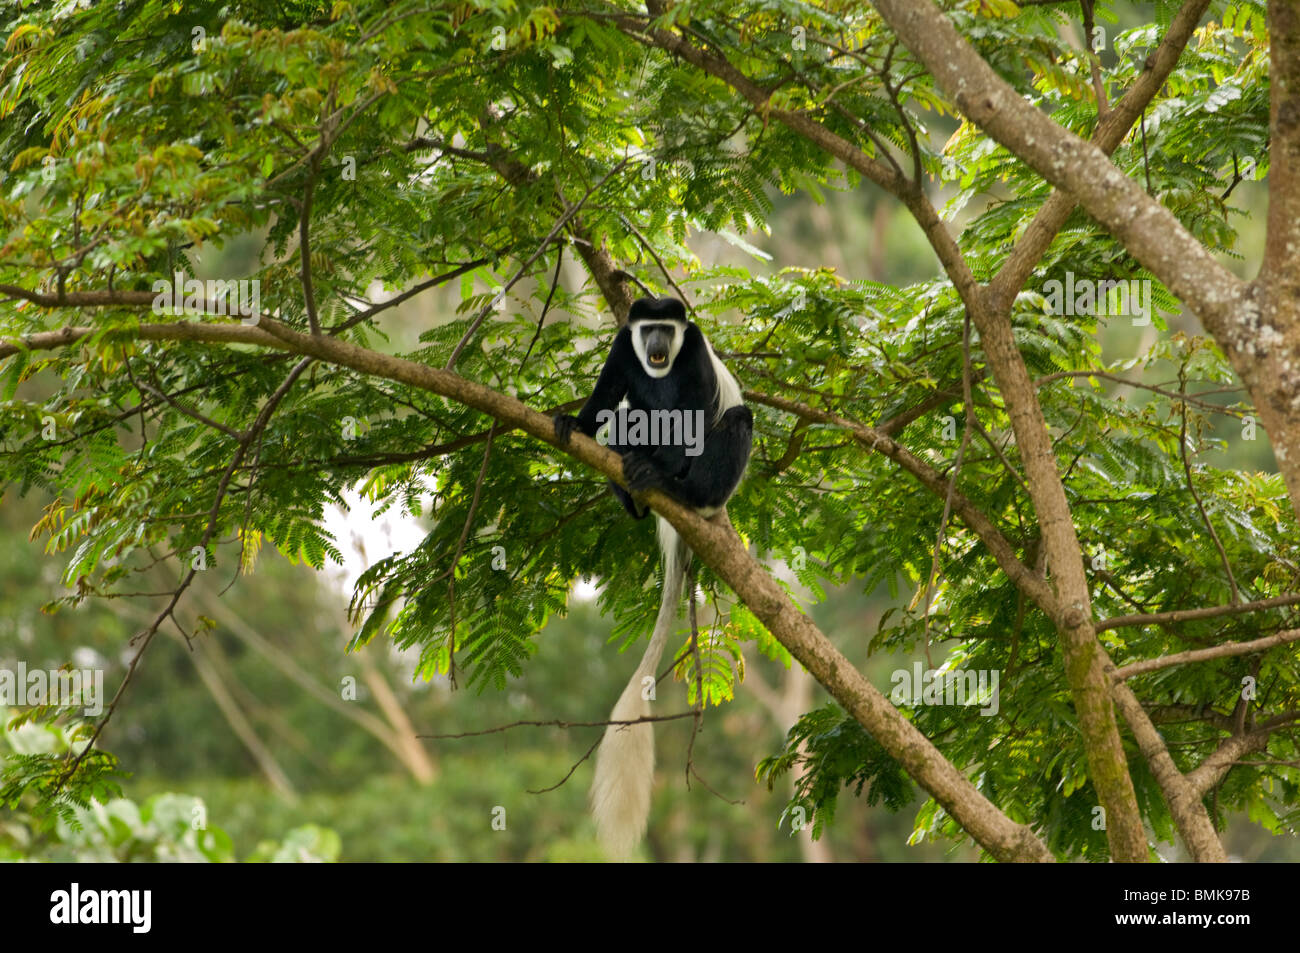 Natural Habitat Of Black And White Colobus